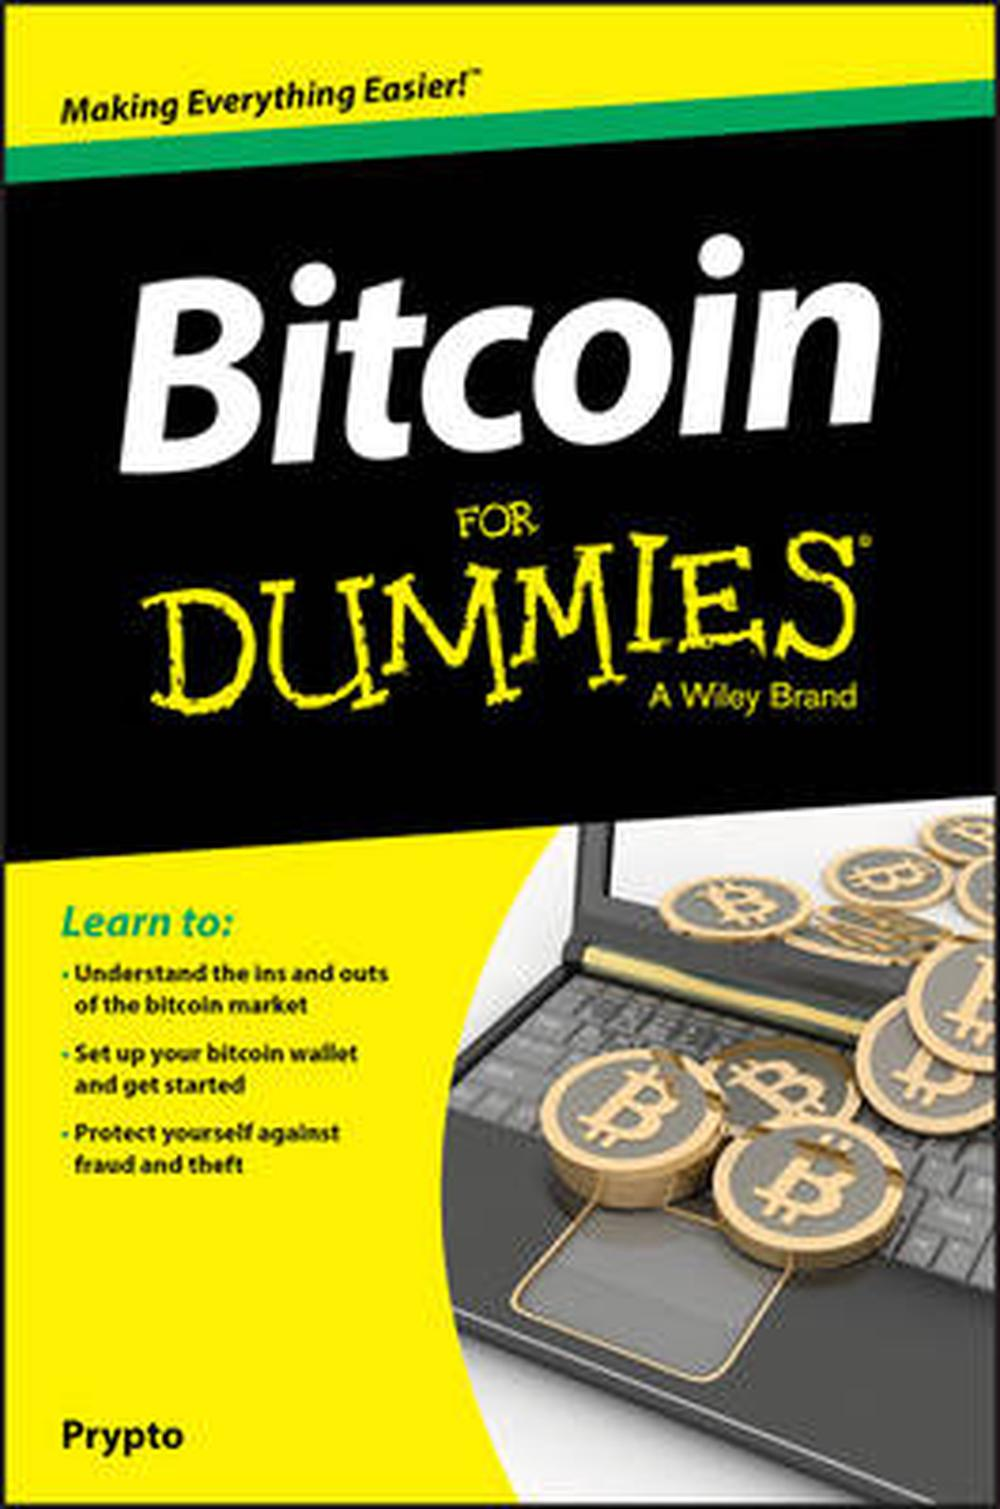 Minage bitcoins for dummies lost all my money sports betting